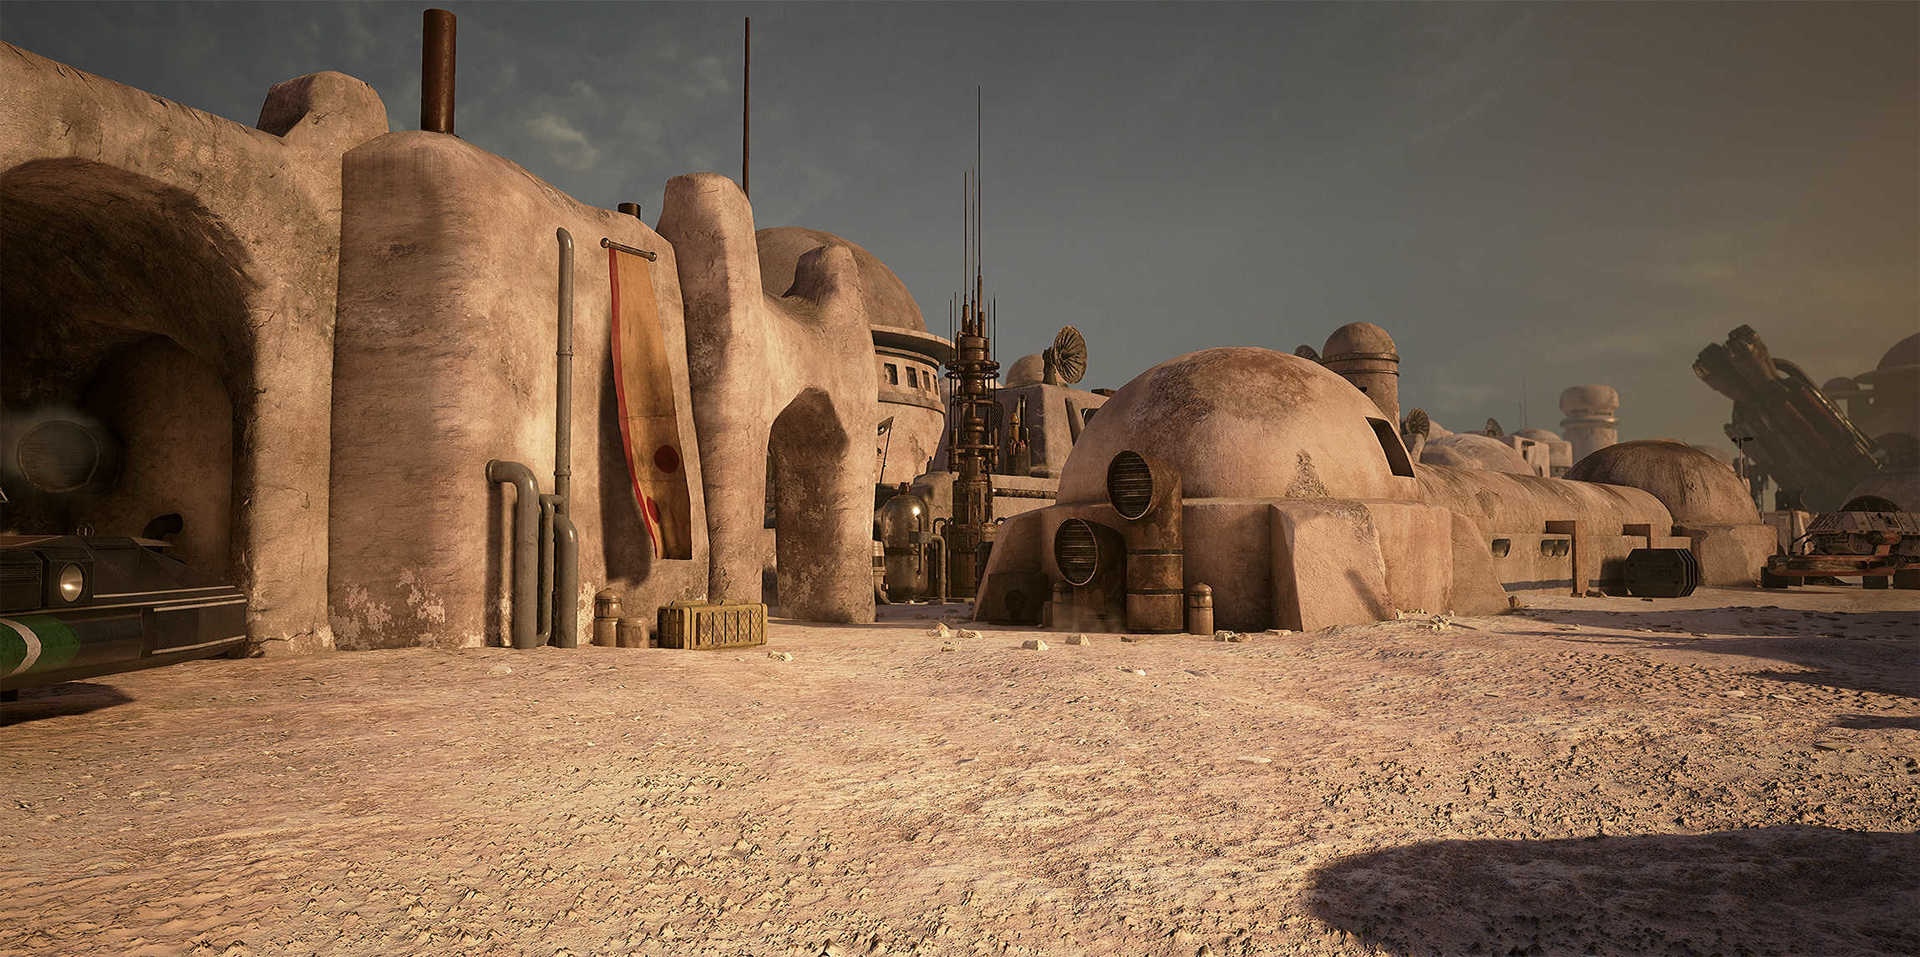 Создание сцены из Star Wars в Unreal Engine 4 - 13